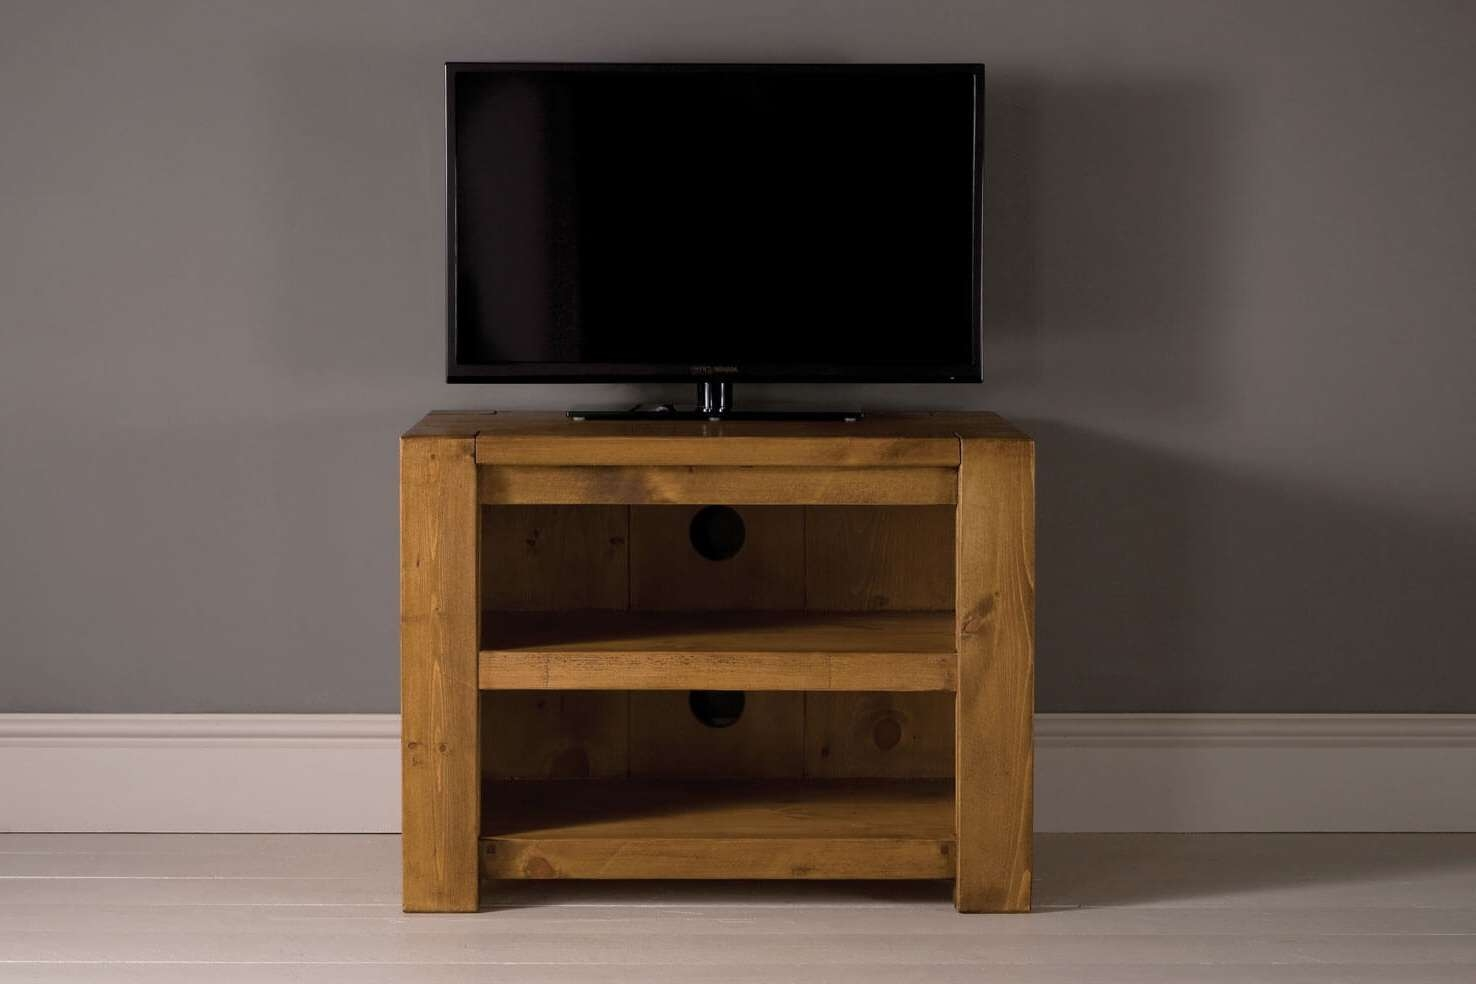 Midi Plank Beam Tv Cabinet With Shelfindigo Furniture Inside Small Tv Cabinets (View 8 of 20)